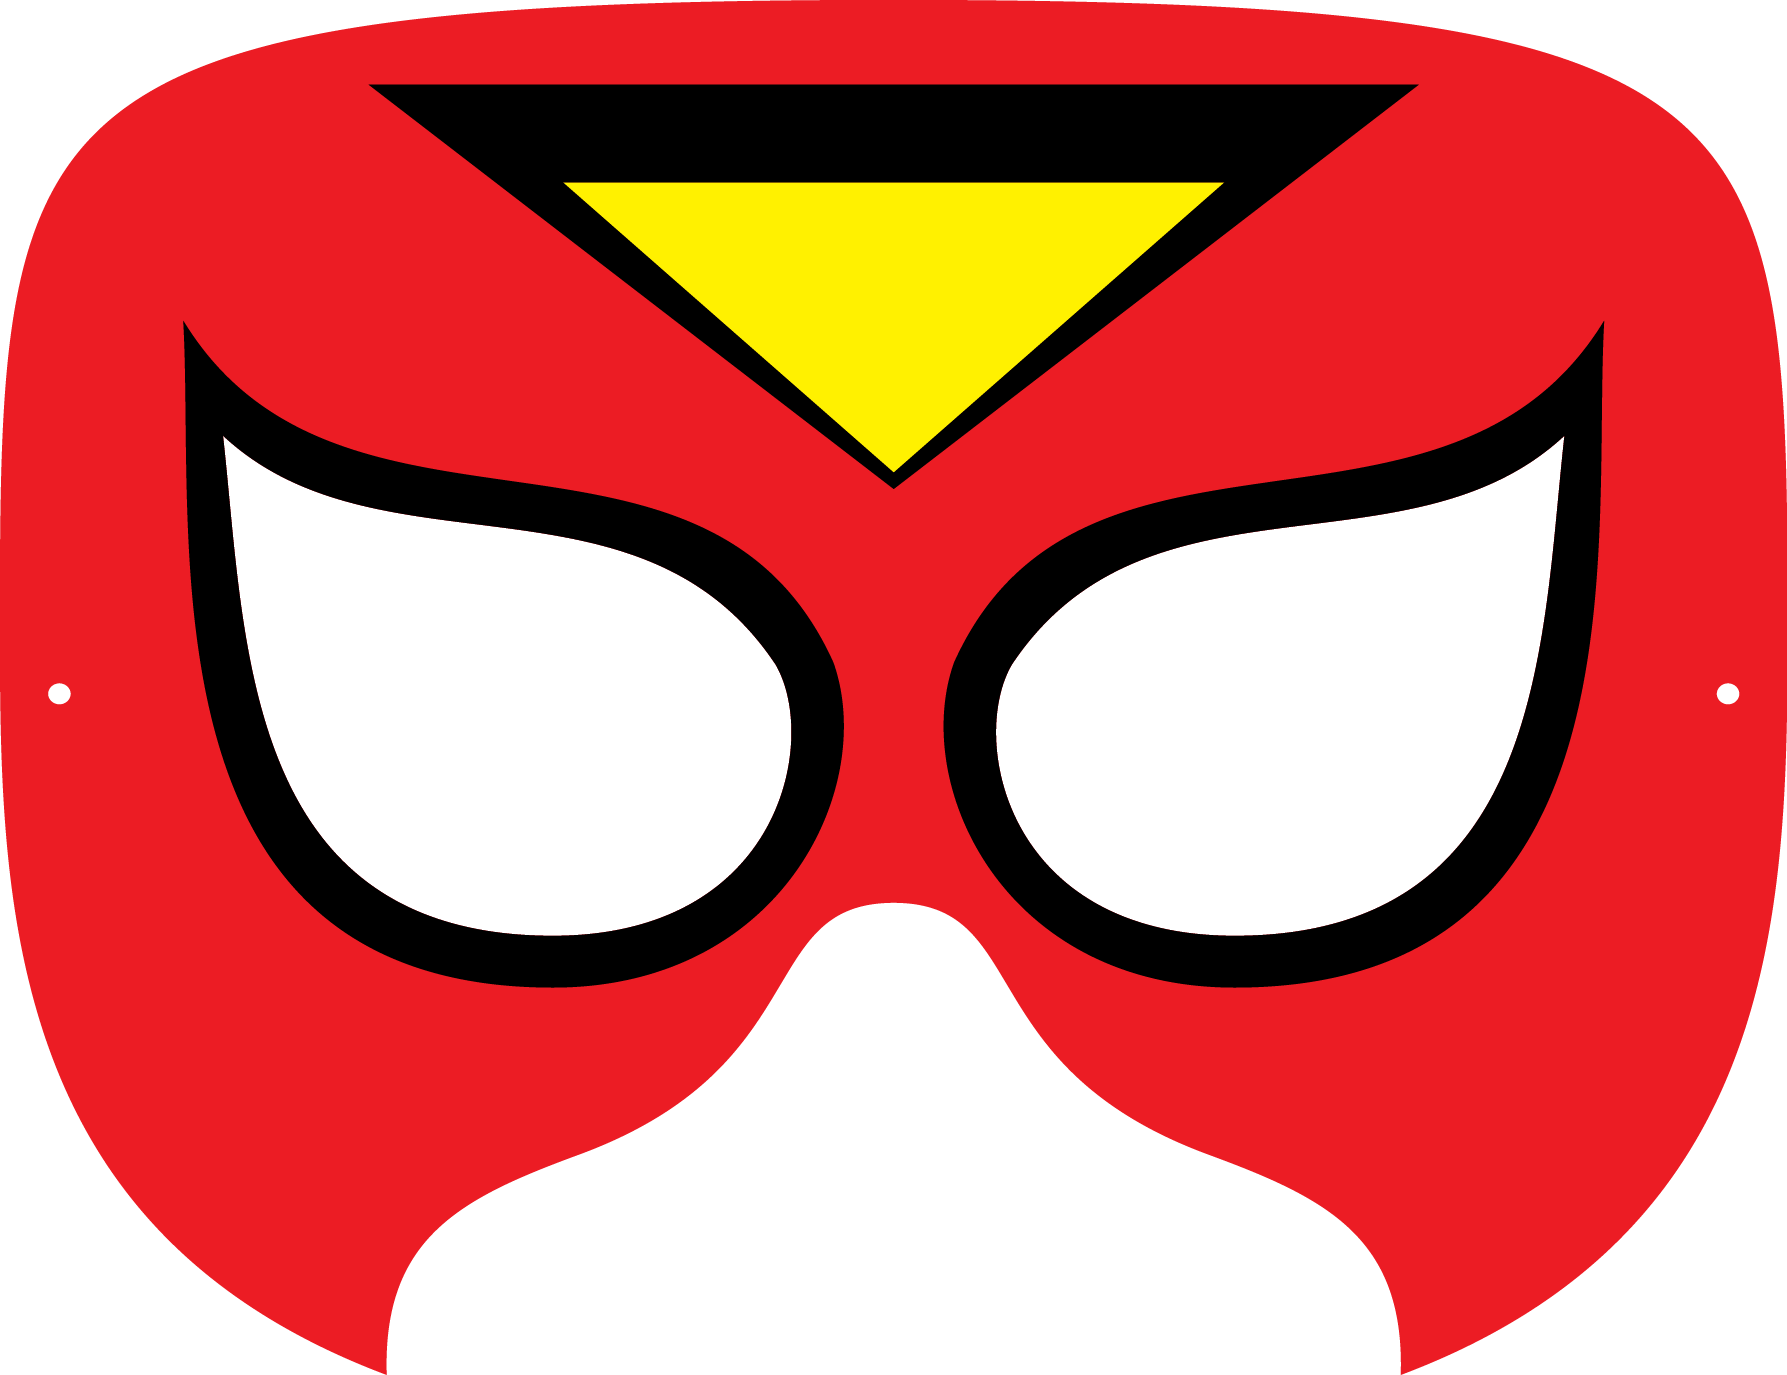 photo relating to Printable Superhero Masks named Superhero Mask Template No cost down load simplest Superhero Mask